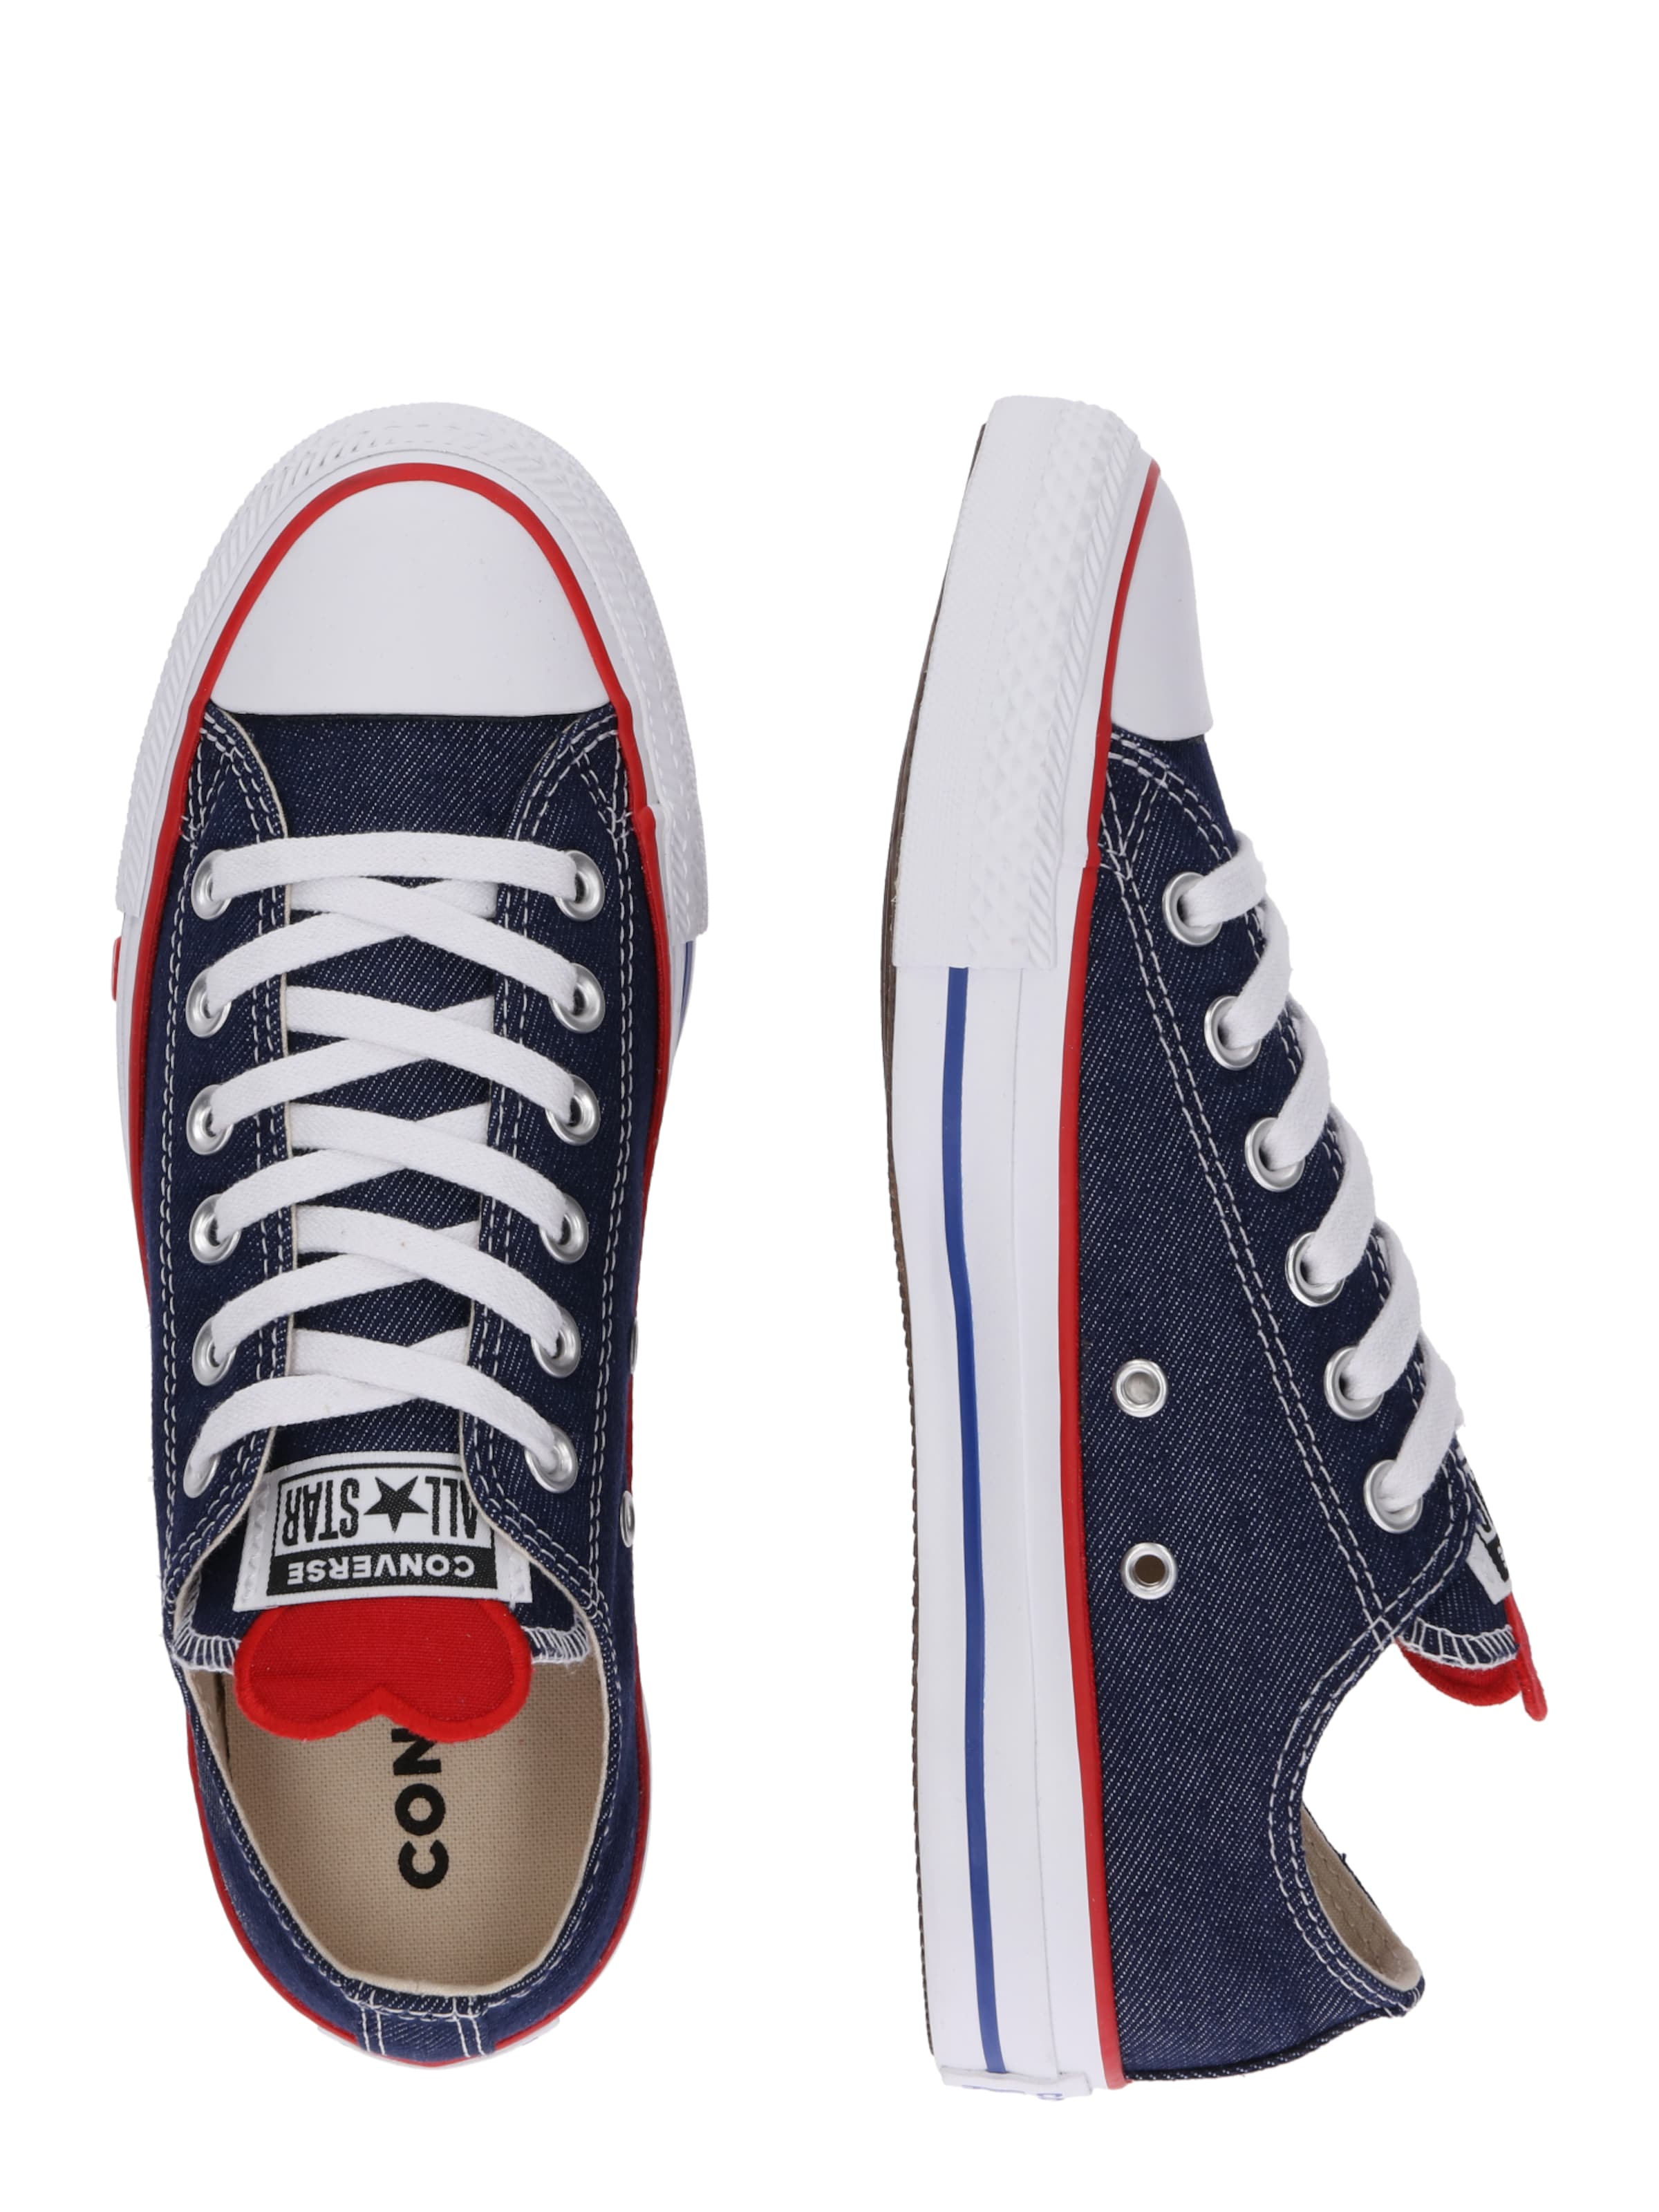 'chucks' Blue In Sneaker Converse DenimWeiß 9I2DWEH